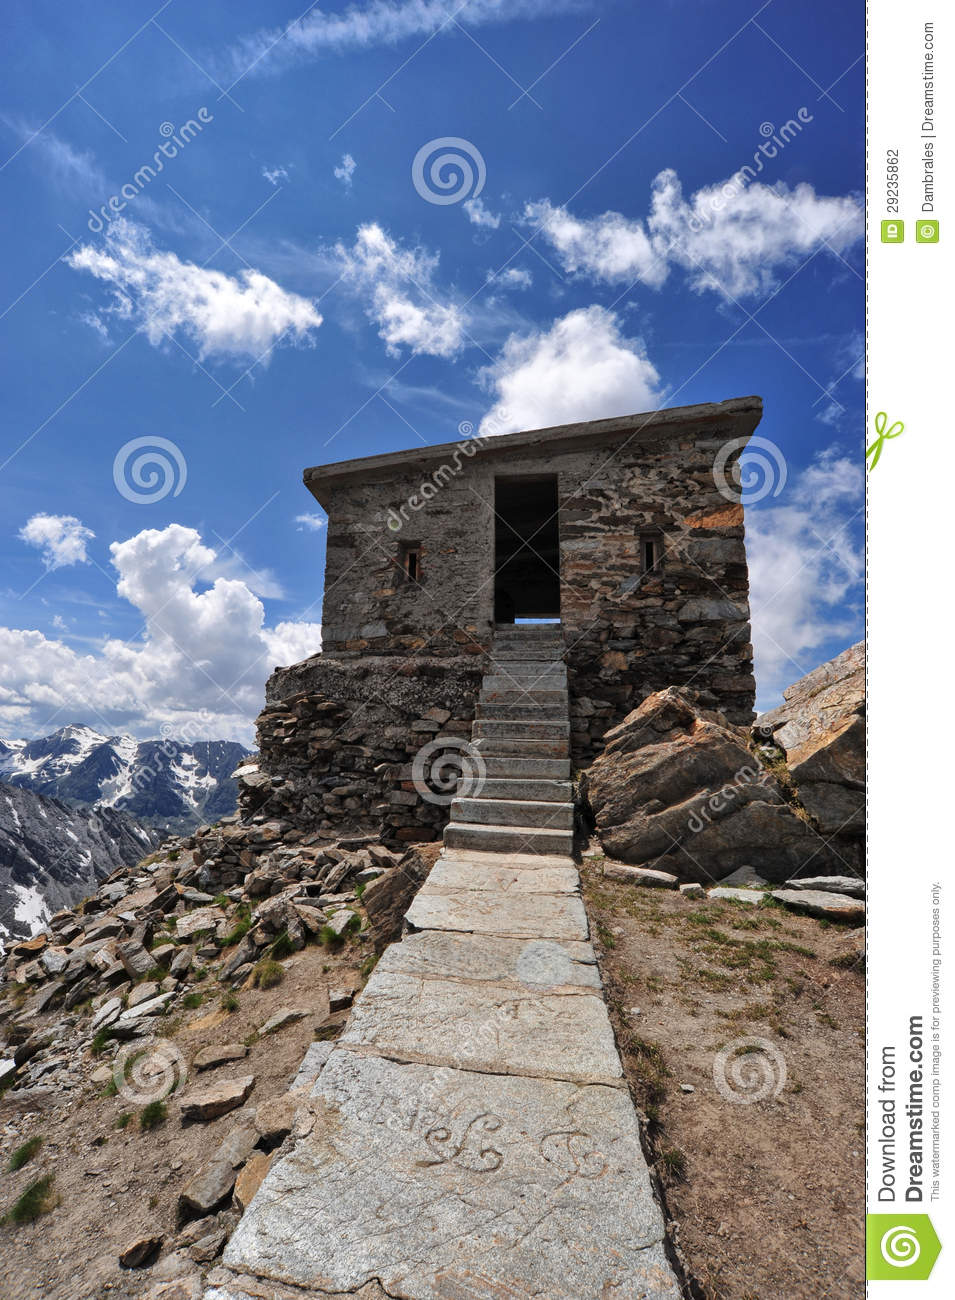 Download Forte Malamot foto de stock. Imagem de blockhouse, europeu - 29235862